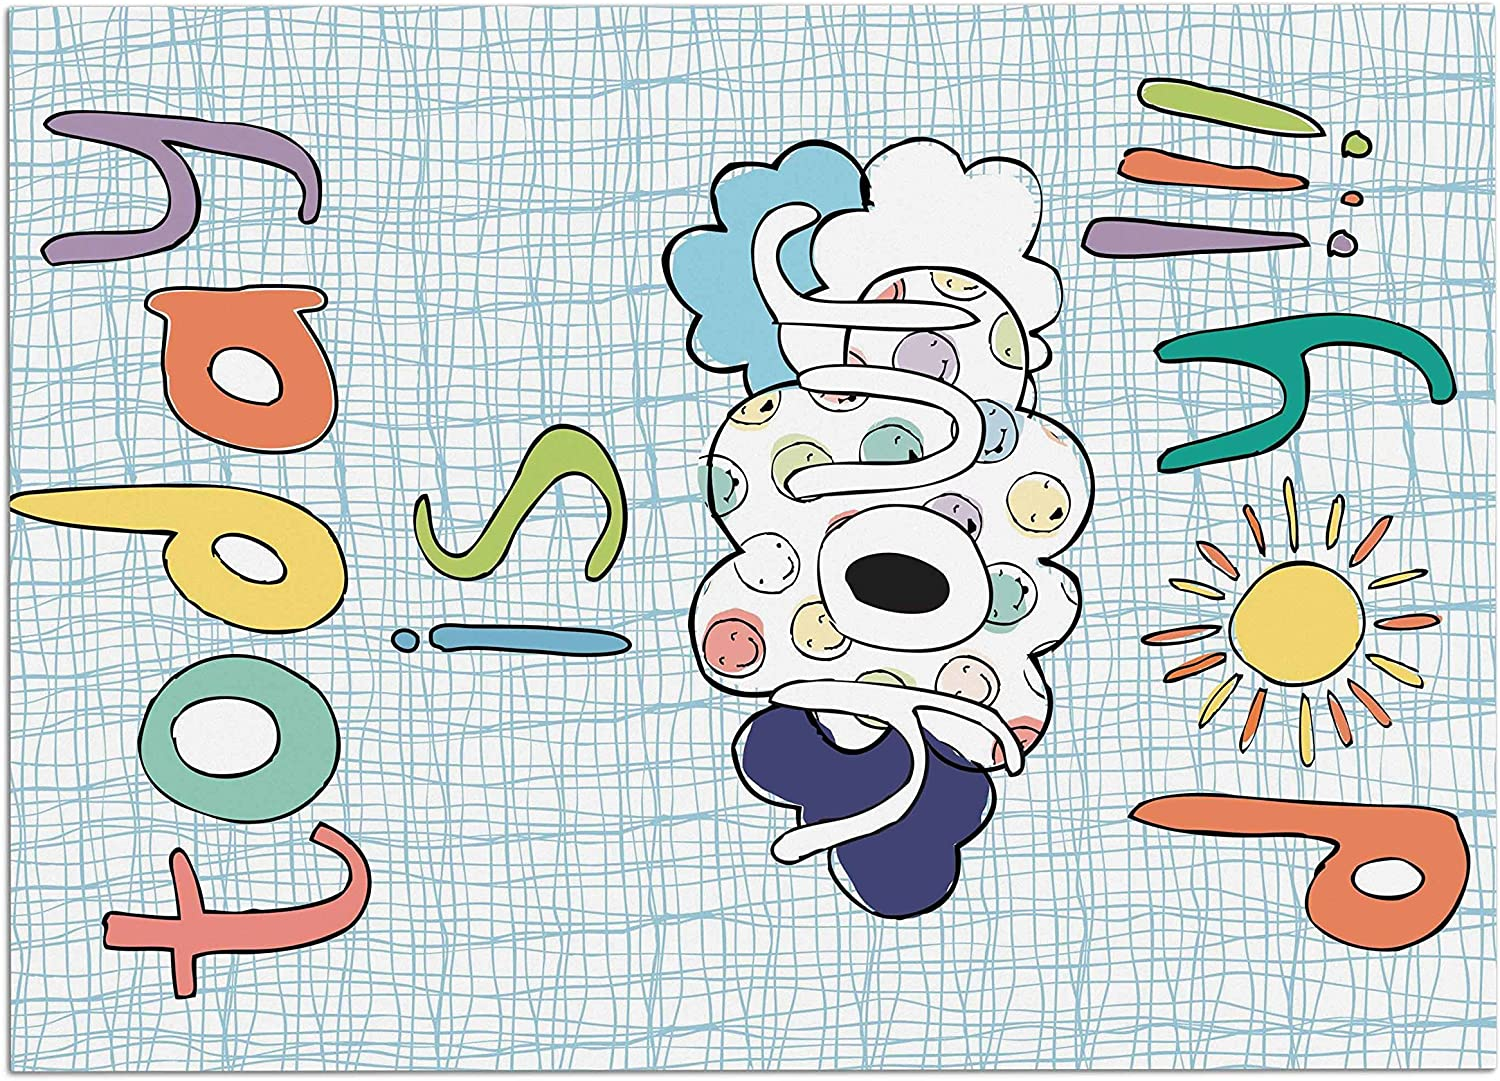 KESS InHouse MB3005ADM02 MaJoBV Today is Your Day bluee Cloud Dog Place Mat, 24  x 15